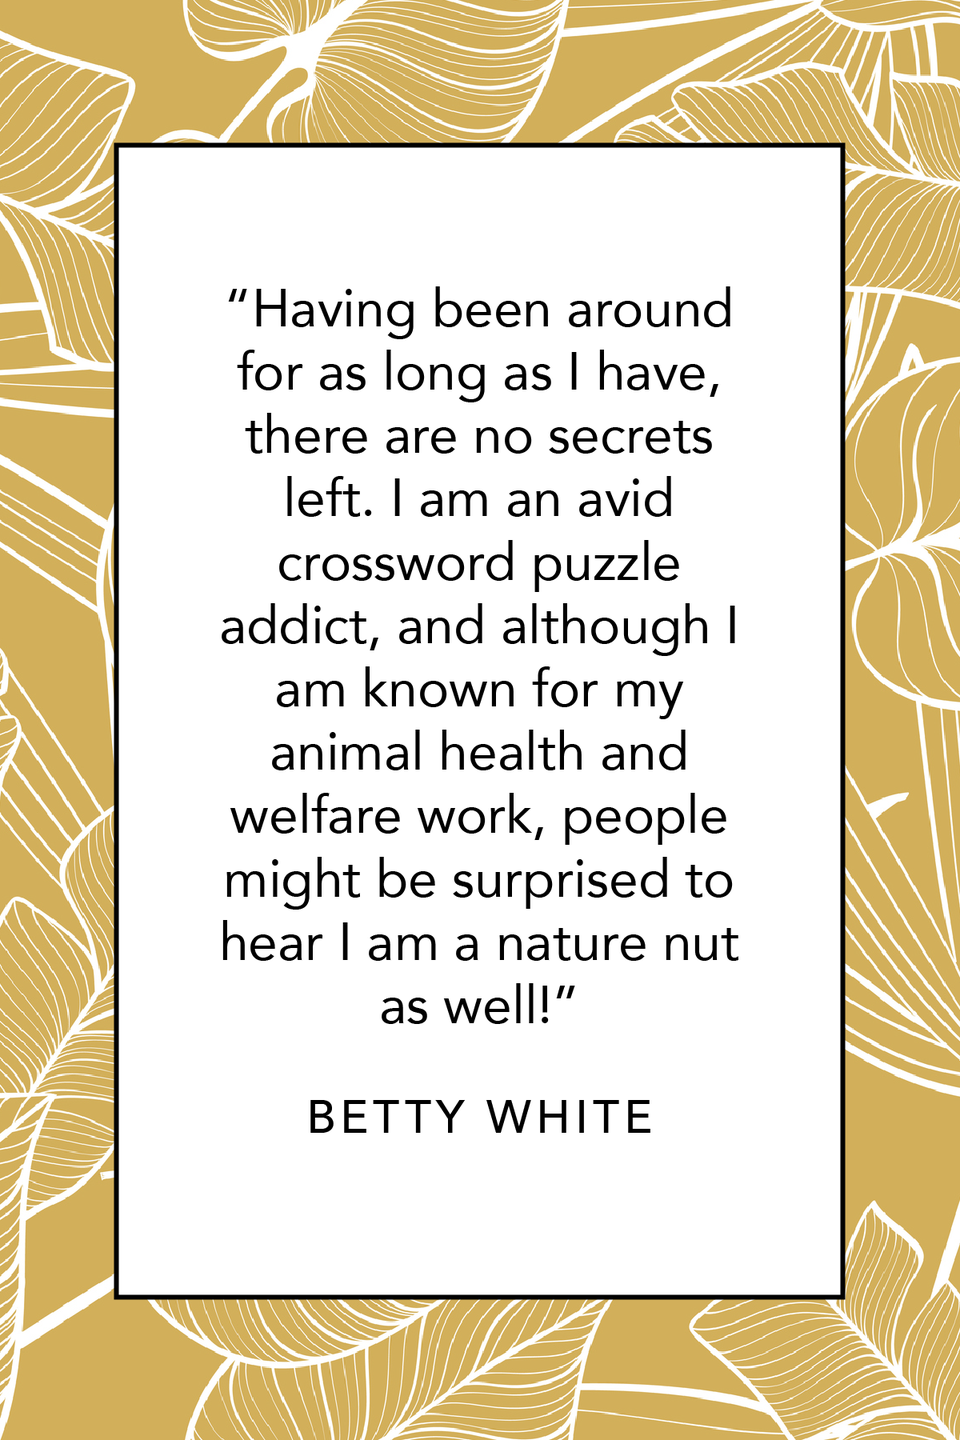 """<p>When asked if there was anything people would be surprised to learn about her during an interview with <a href=""""https://www.guinnessworldrecords.com/news/2013/9/q-and-a-betty-white-on-her-world-record-her-favorite-works-and-getting-started-on-tv-50966/"""" rel=""""nofollow noopener"""" target=""""_blank"""" data-ylk=""""slk:Guinness World Records"""" class=""""link rapid-noclick-resp"""">Guinness World Records</a>, Betty White said there were none, but she did share some of her favorite things. """"Having been around for as long as I have, there are no secrets left. I am an avid crossword puzzle addict, and although I am known for my animal health and welfare work, people might be surprised to hear I am a nature nut as well!""""</p>"""